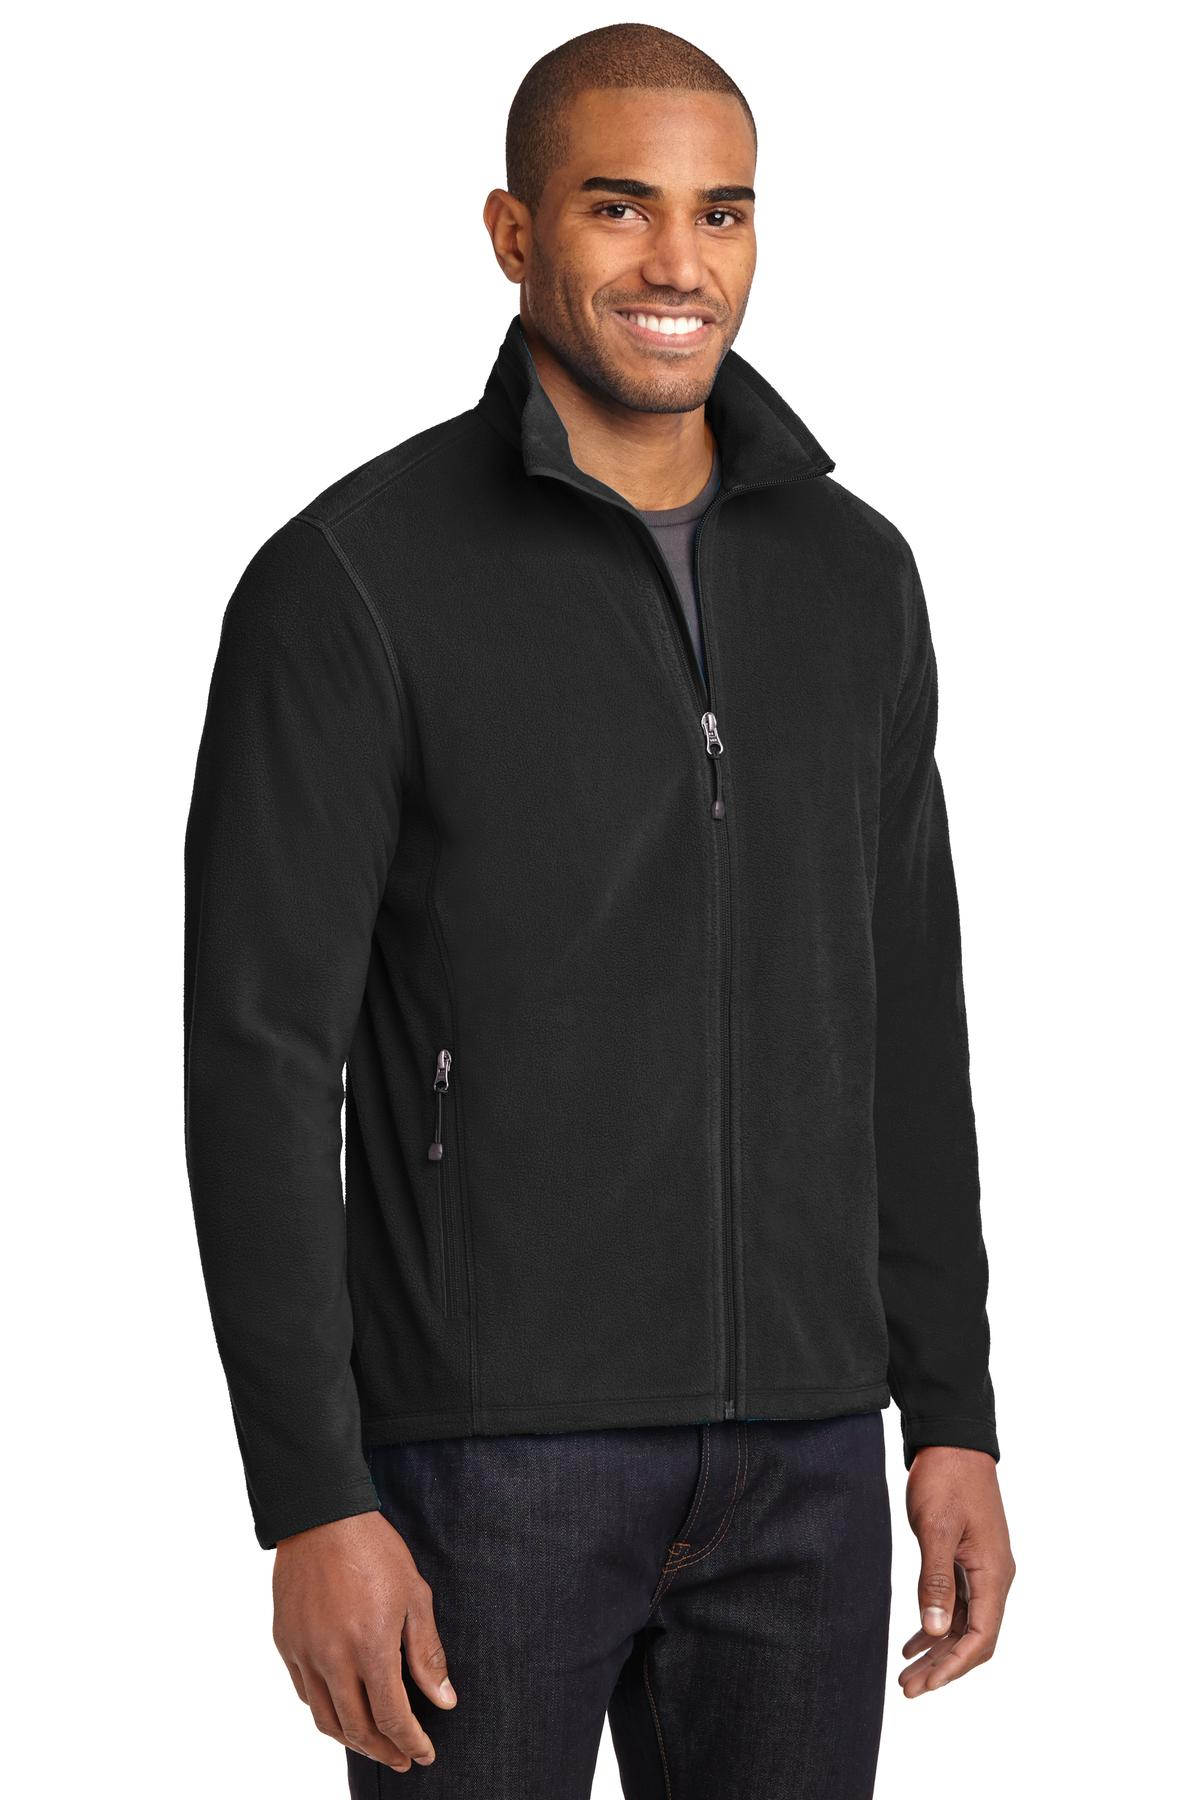 Mens Eddie Bauer Full-Zip Microfleece Jacket - RCG2382